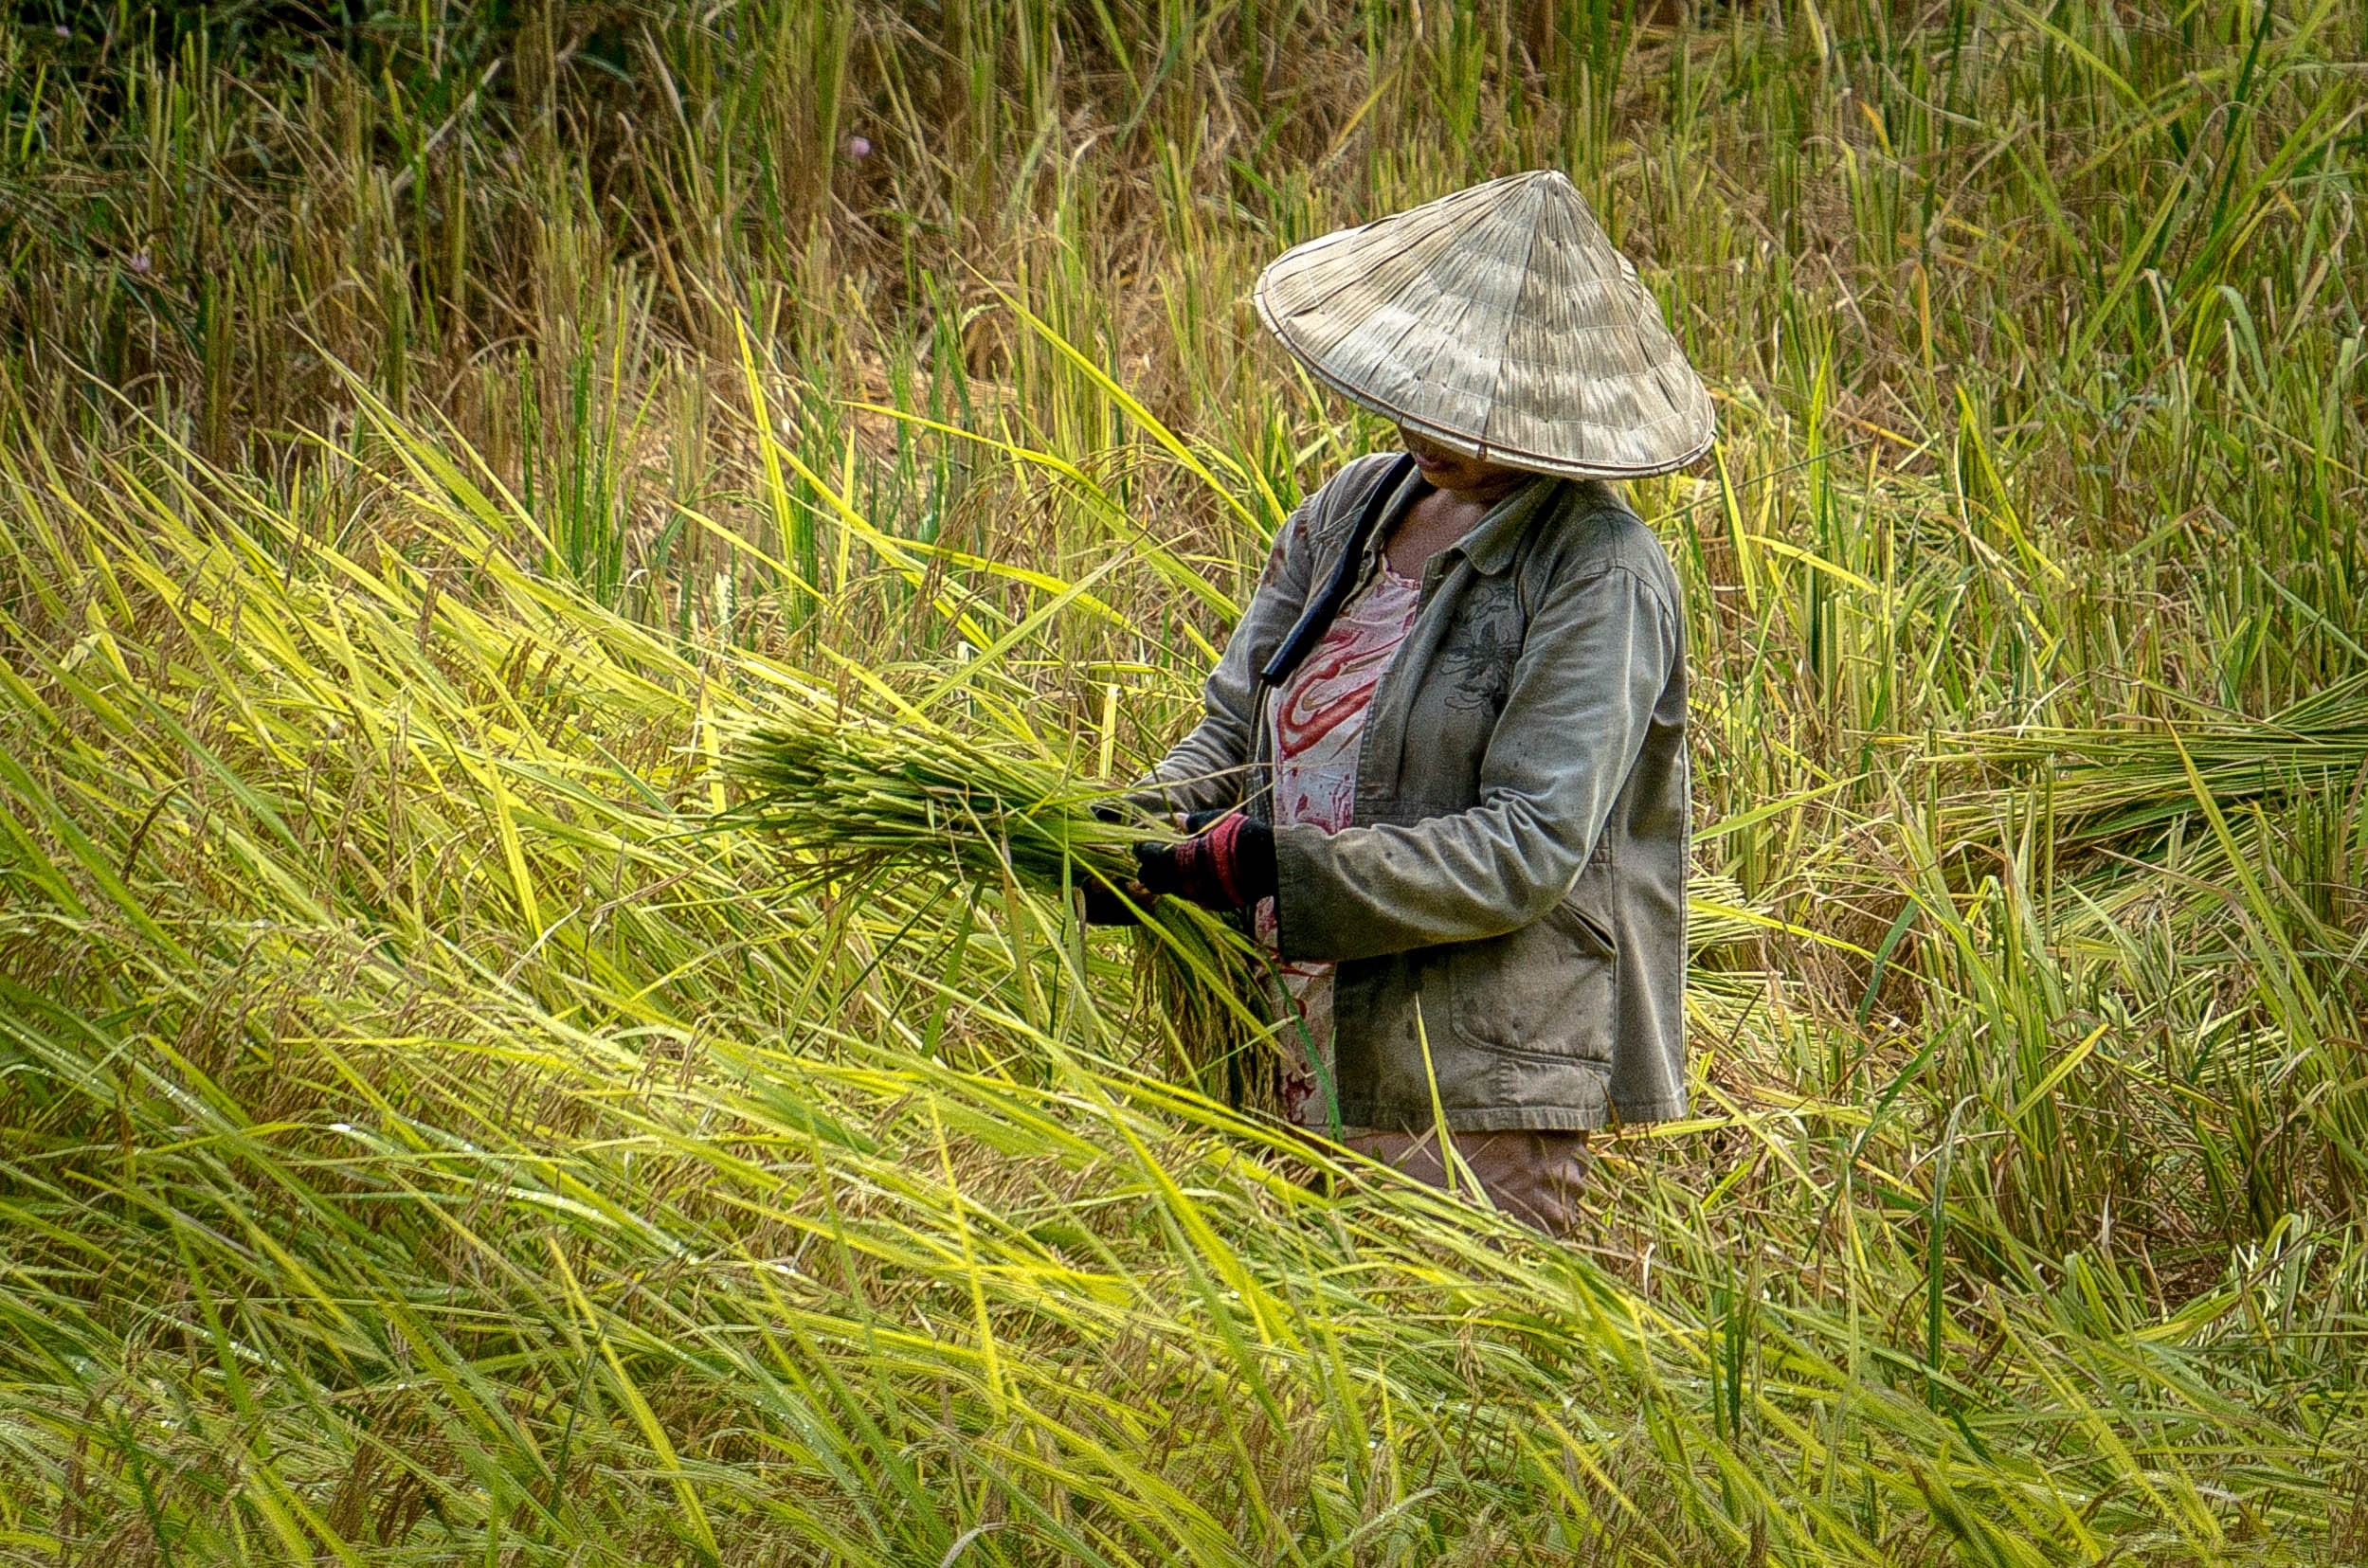 person wearing hat picking paddy plant